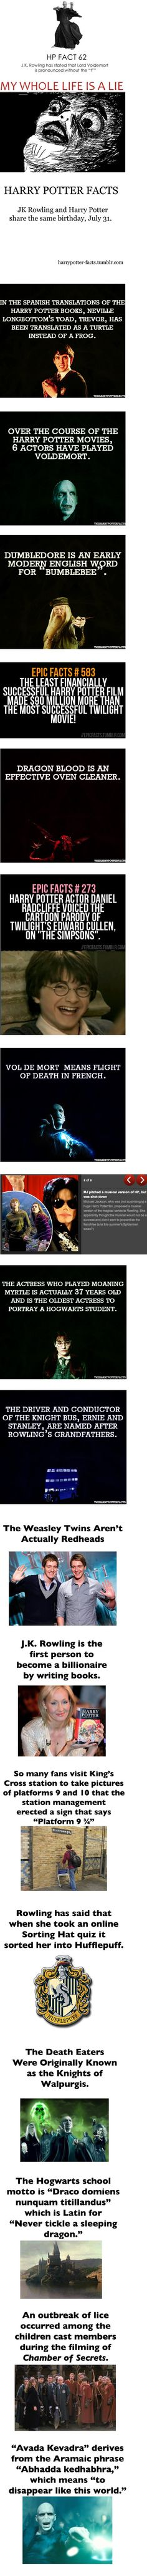 Cool Harry Potter facts you probably didn't know.